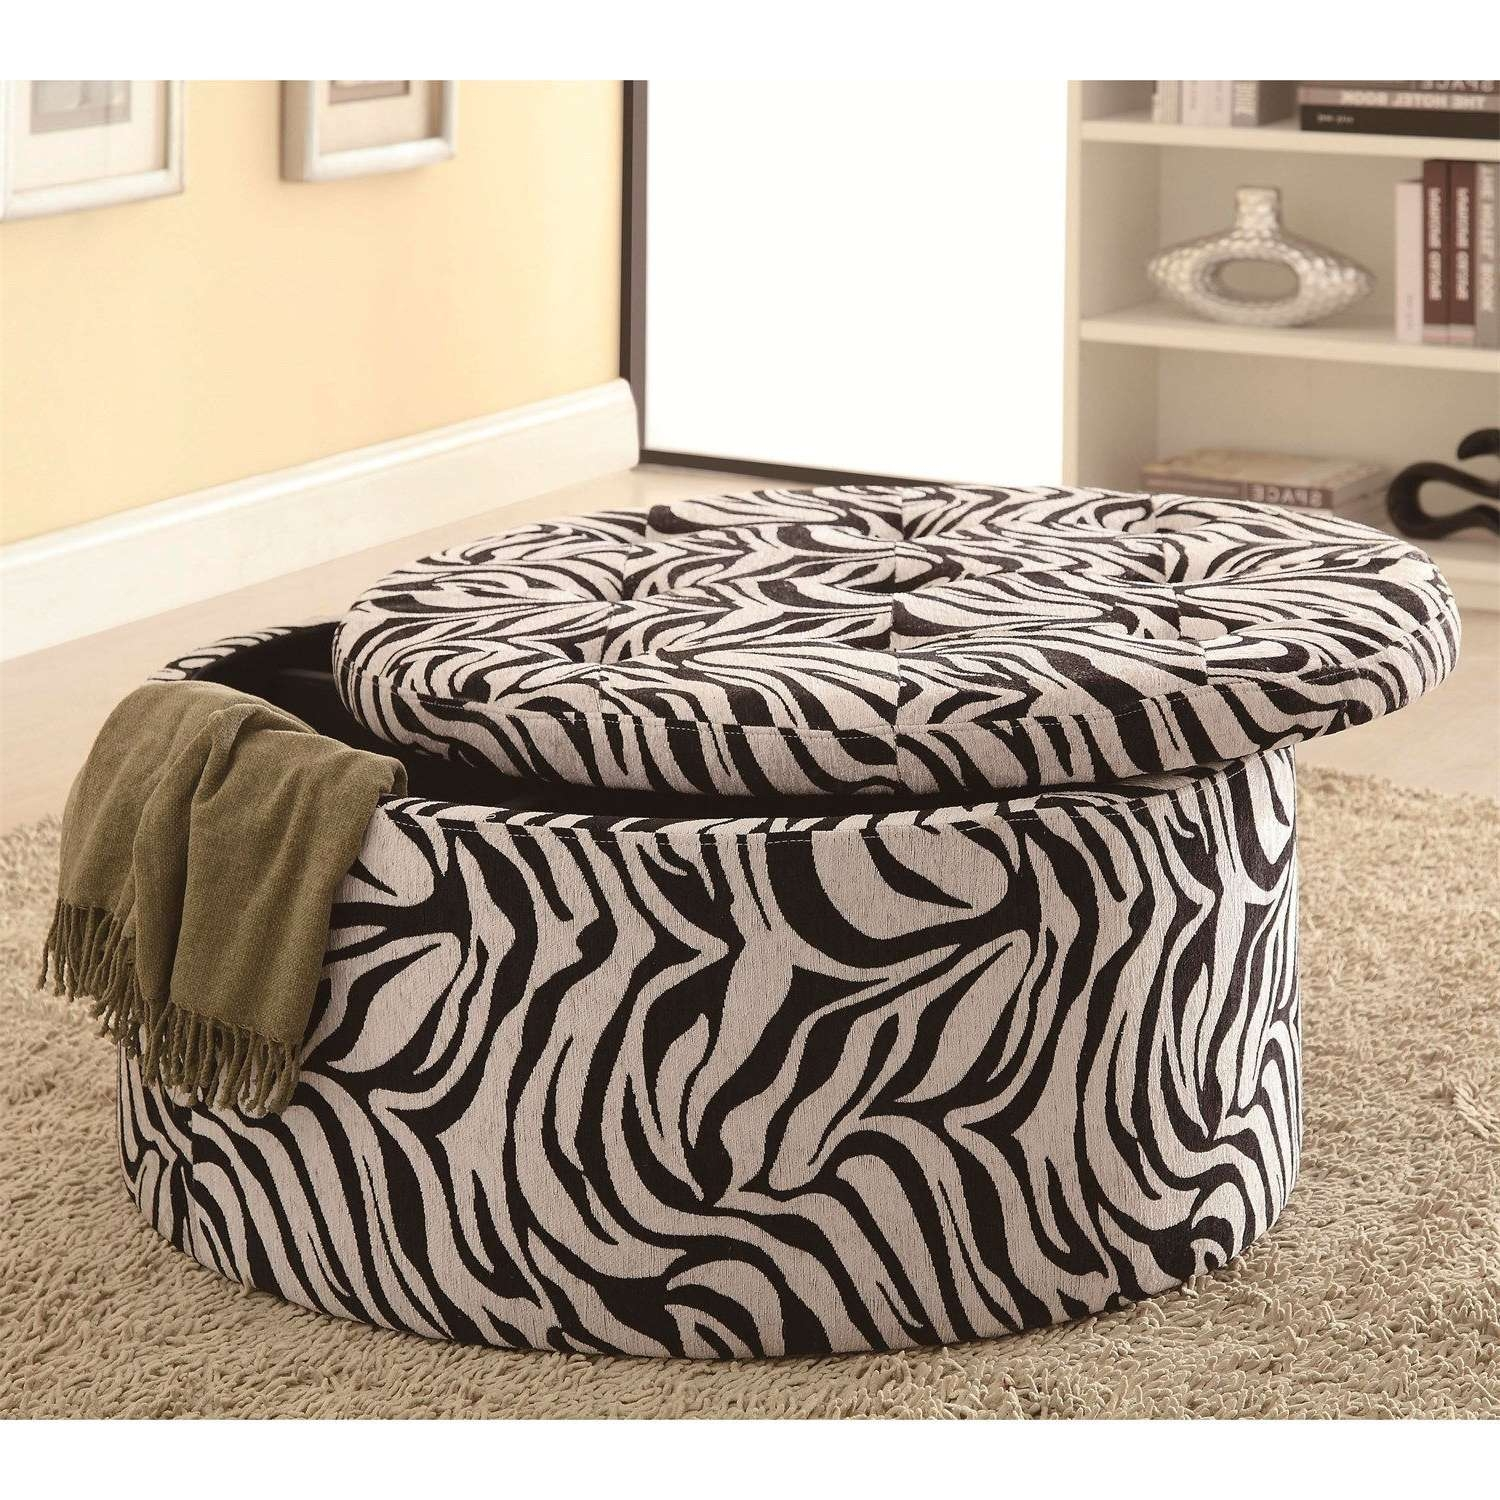 Zebra Print Ottoman, Round Jute Ottoman Round Fabric Ottoman Within Recent Animal Print Ottoman Coffee Tables (Gallery 19 of 20)